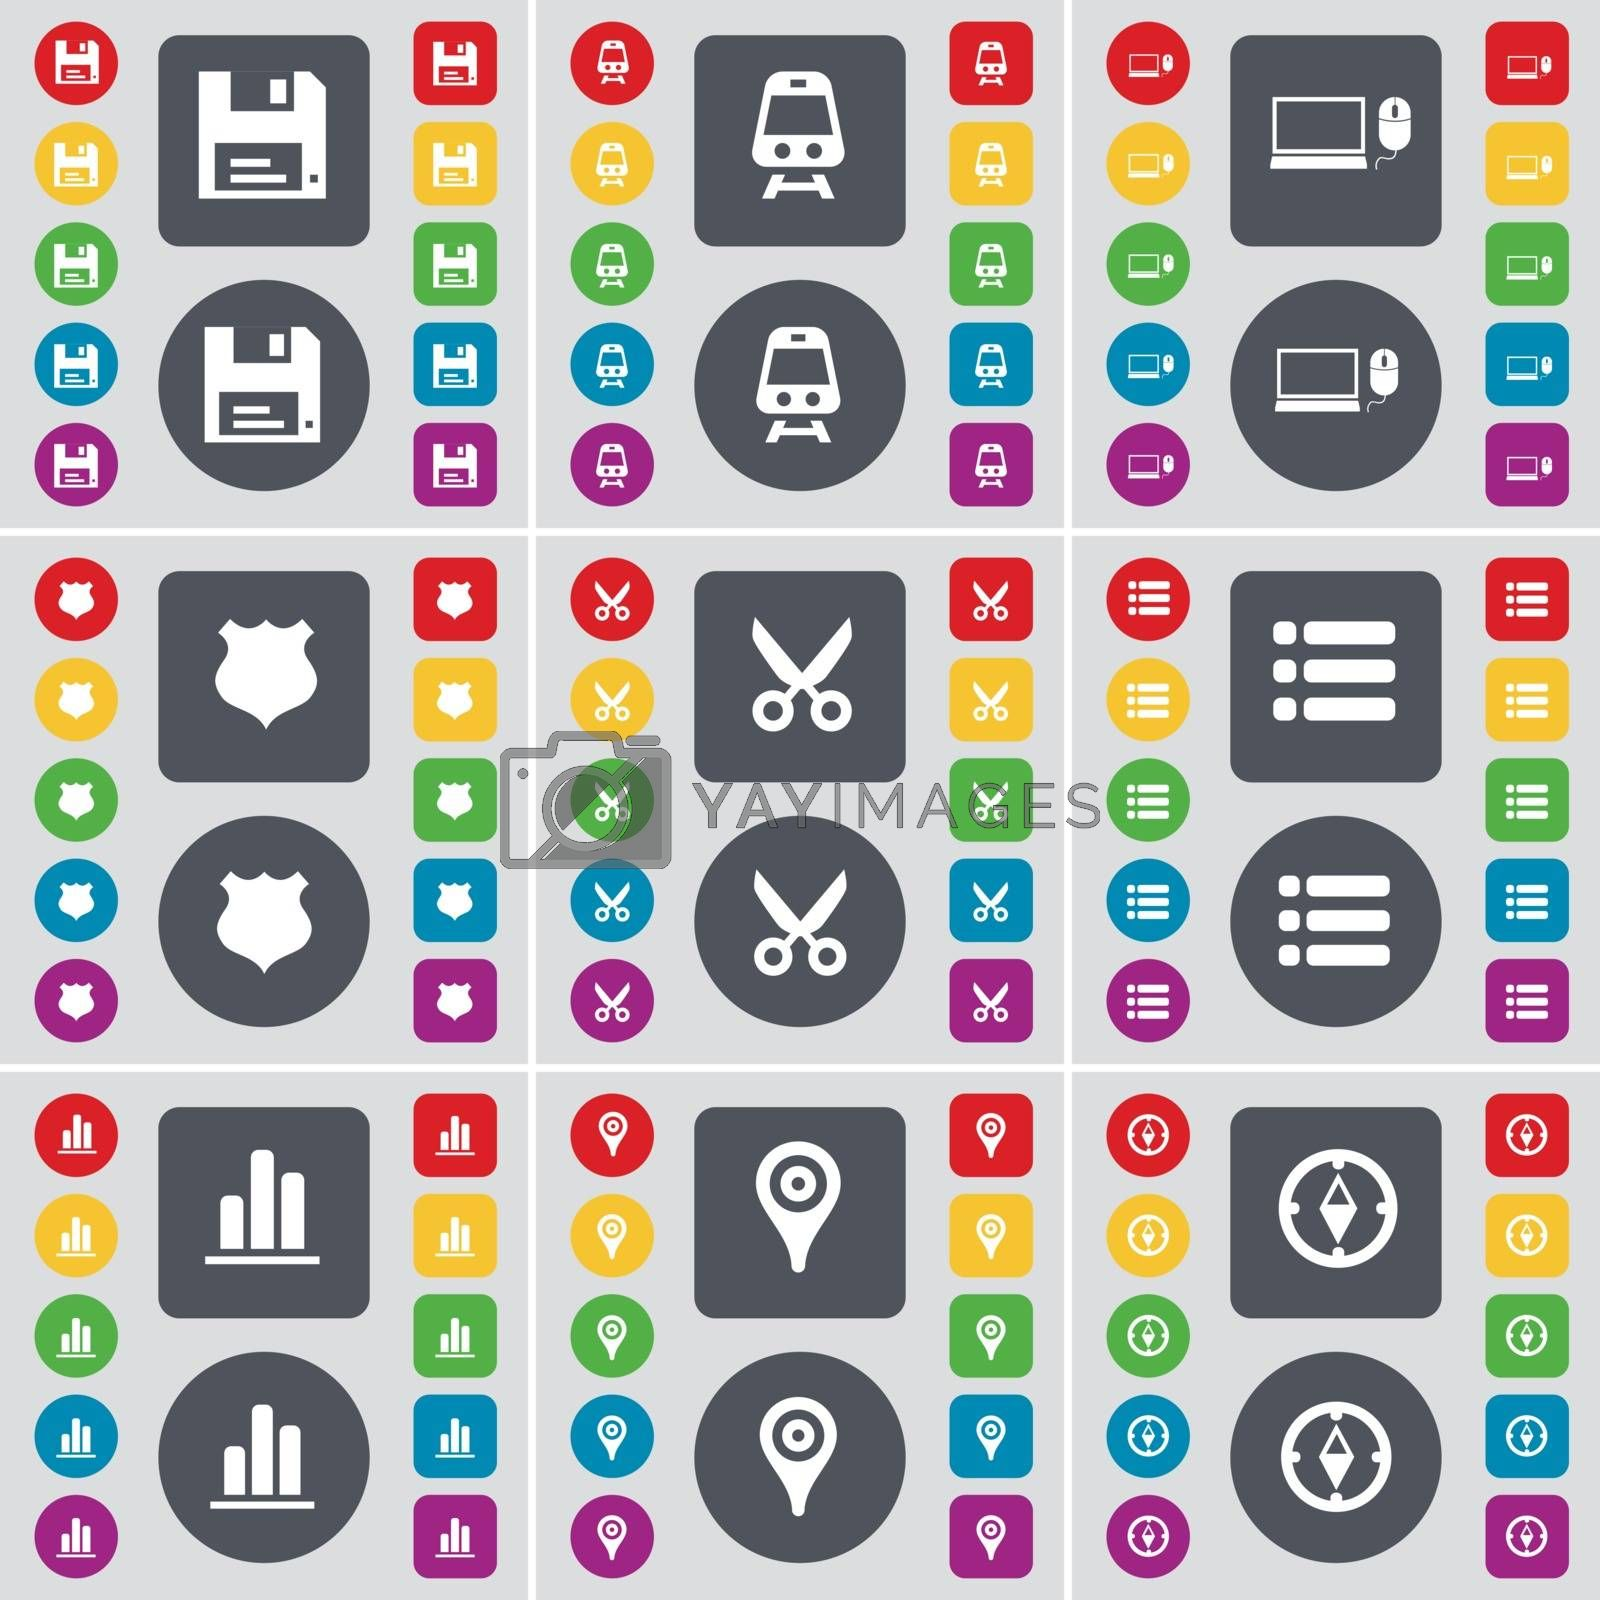 Royalty free image of Floppy, Train, Laptop, Police badge, Scissors, List, Diagram, Checkpoint, Compass icon symbol. A large set of flat, colored buttons for your design. Vector by serhii_lohvyniuk